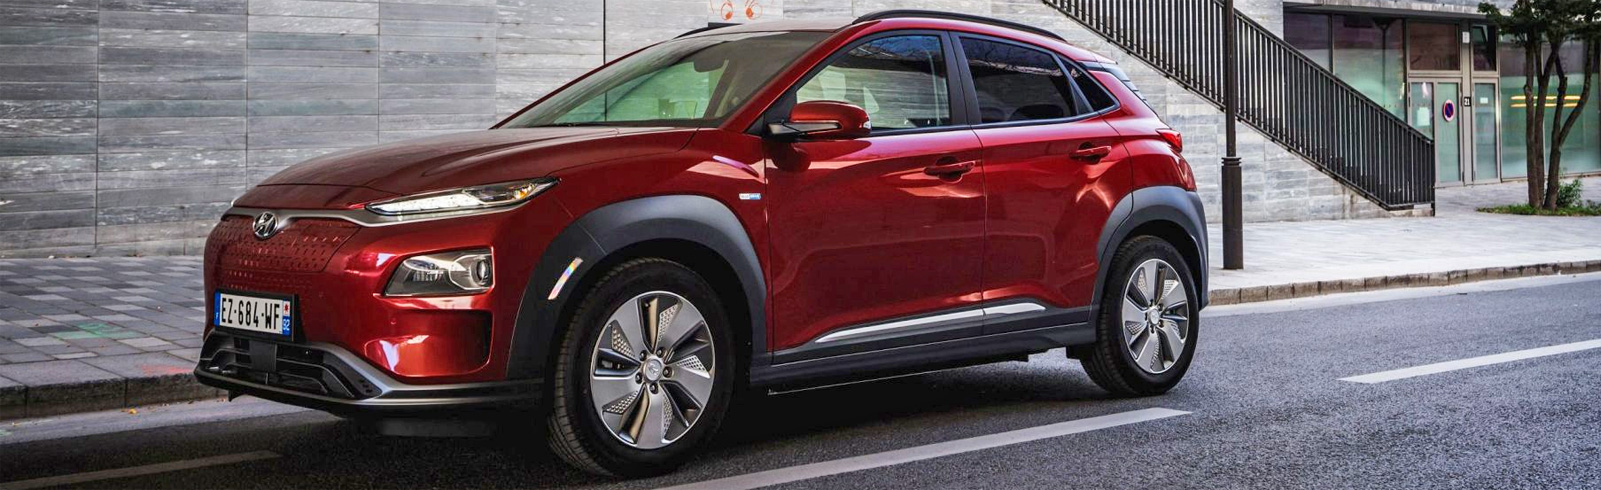 2020 Hyundai Kona Electric goes on sale in France this month